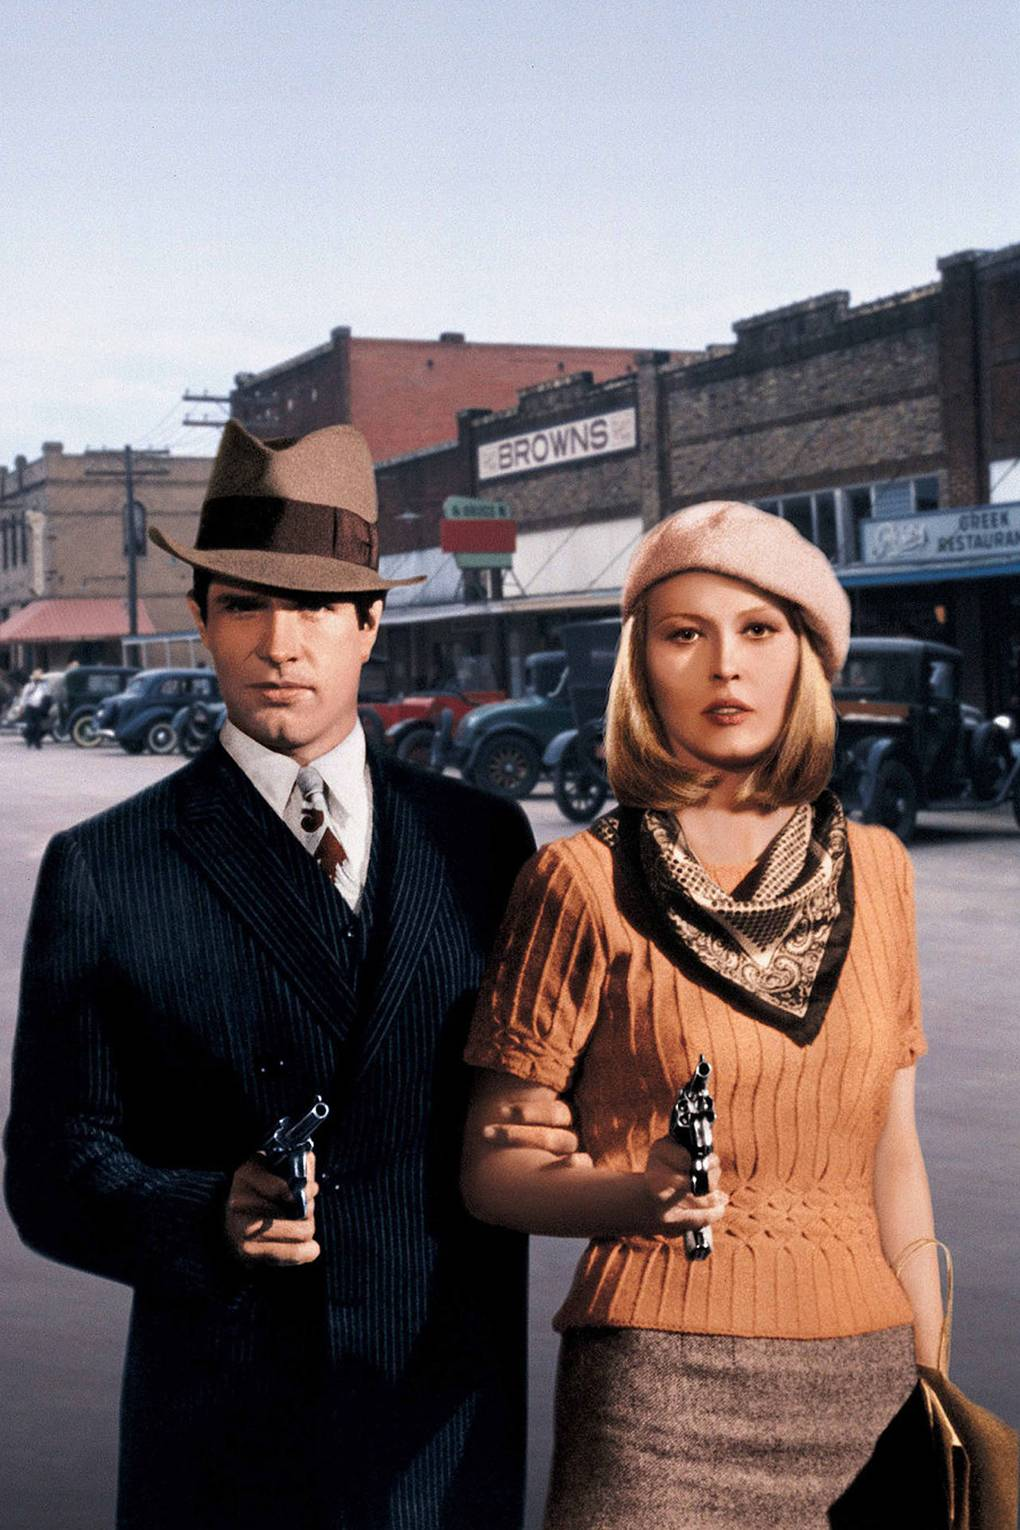 Bonnie And Clyde At 50 The Films Fashion Legacy British Vogue